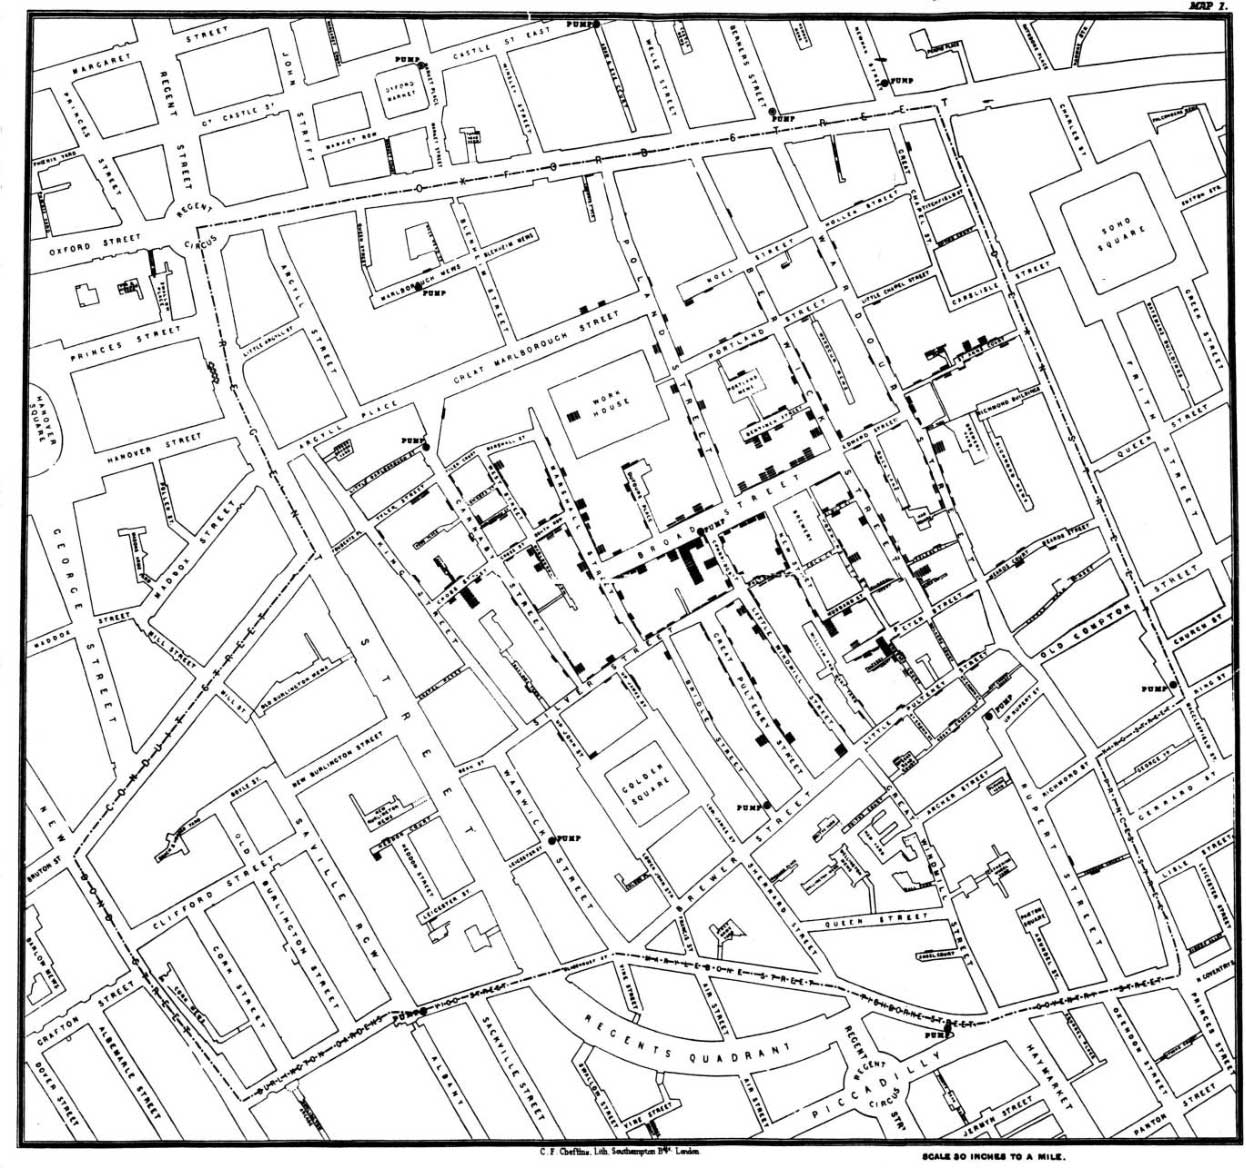 John Snow's 1854 map of the London Broad Street Cholera outbreak. (Image: public domain)